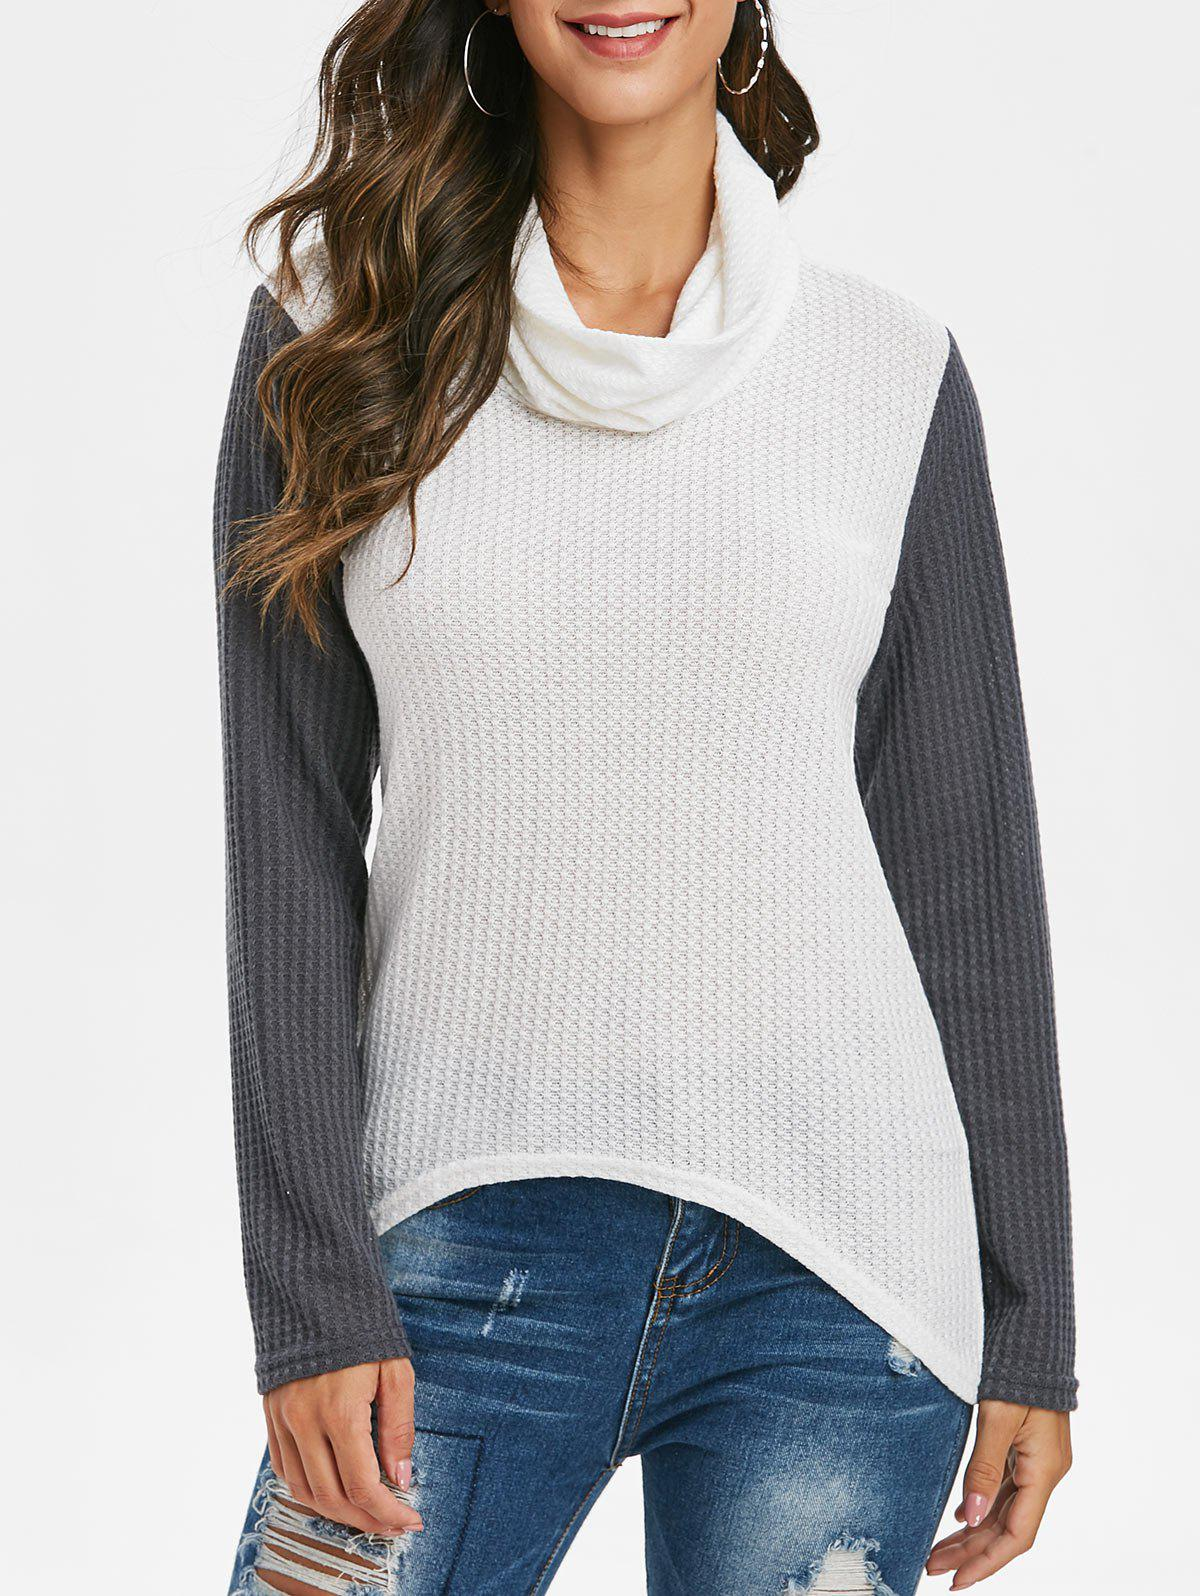 Online Cowl Neck Two Tone Honeycomb Knit Sweater